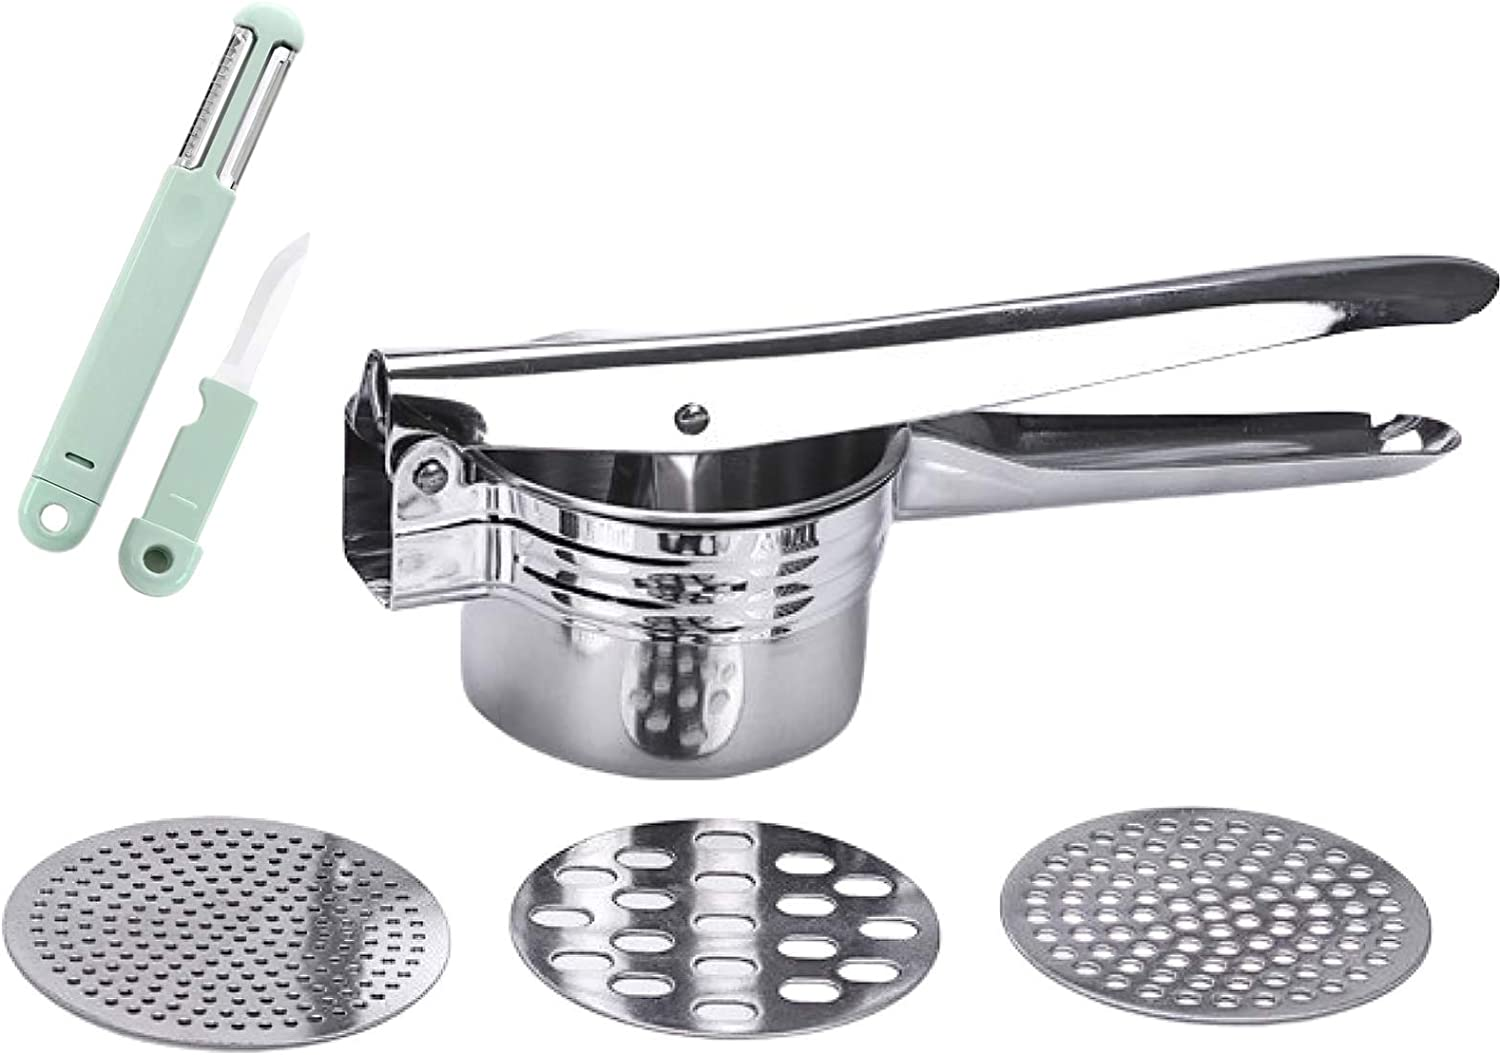 Menurto Potato Ricer with 3 Function Knife, Stainless Steel Potato Masher with 3 İnterchangeable Discs, Gnocchi Maker, Spaetzle Press, Easy to Use Hand Press for Baby Food, Cauliflower, Potatoes